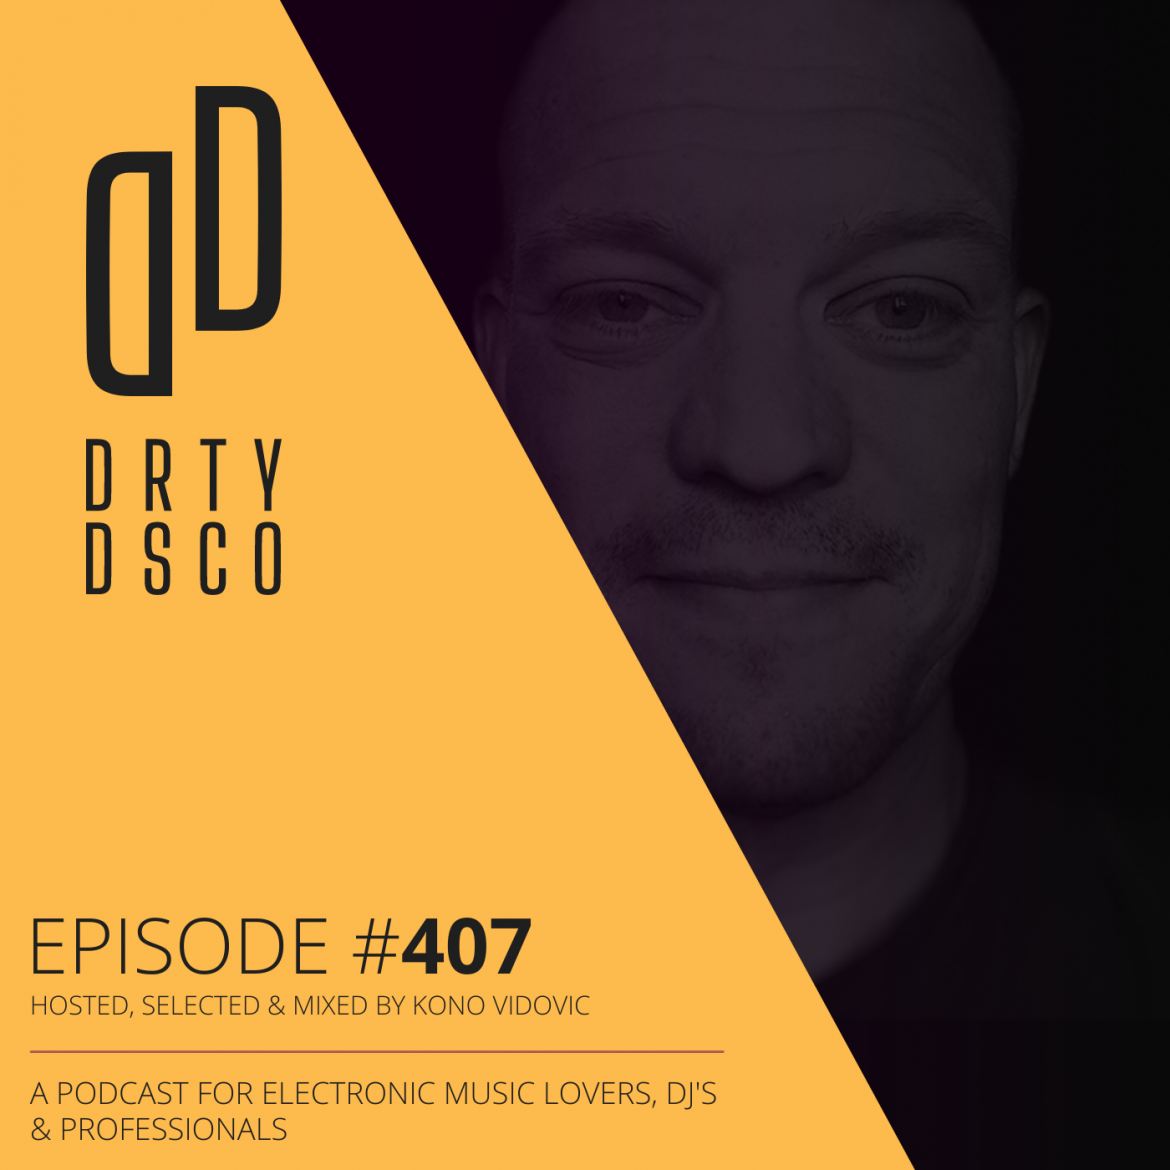 New mixed playlist selection in Dirty Disco 407